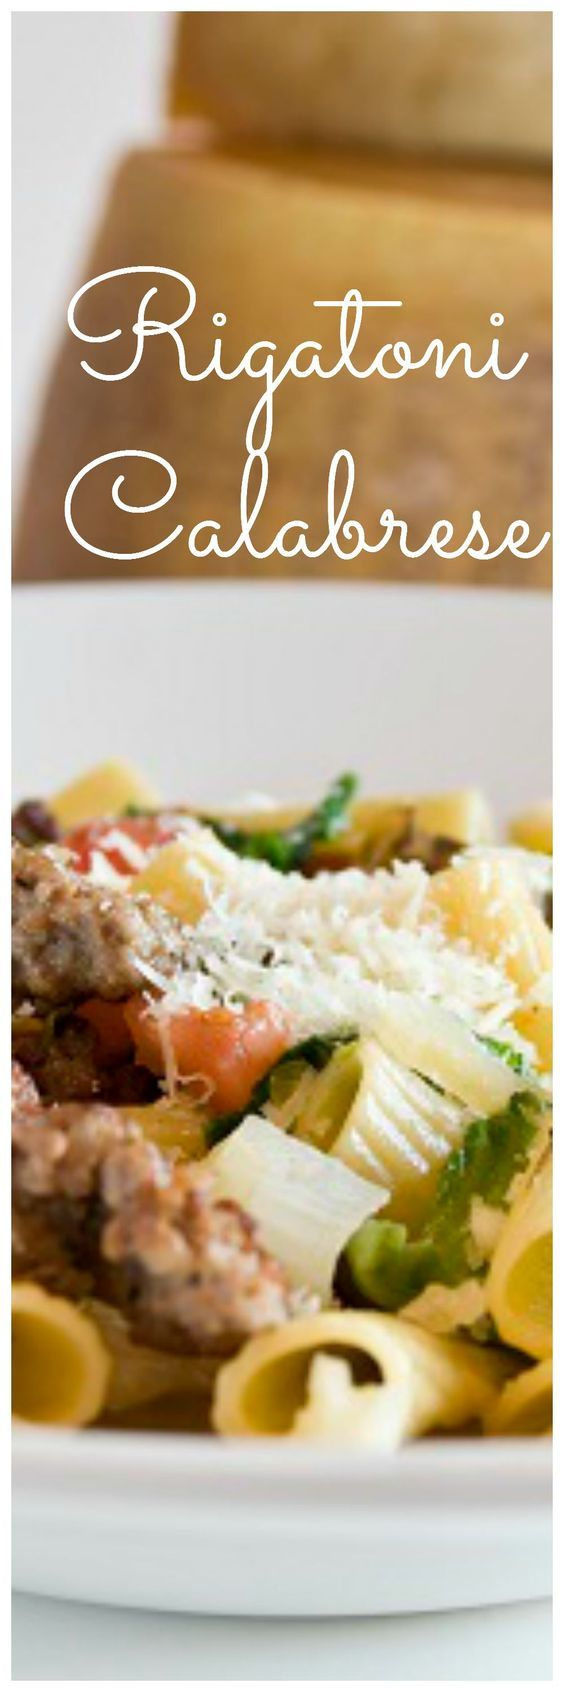 With sausage, escarole, kalamata olives, tomatoes and  mushrooms, this rigatoni calabrese pasta is the perfect complete weeknight meal!  Recipe from Portobello Restaurant at Downtown Disney.